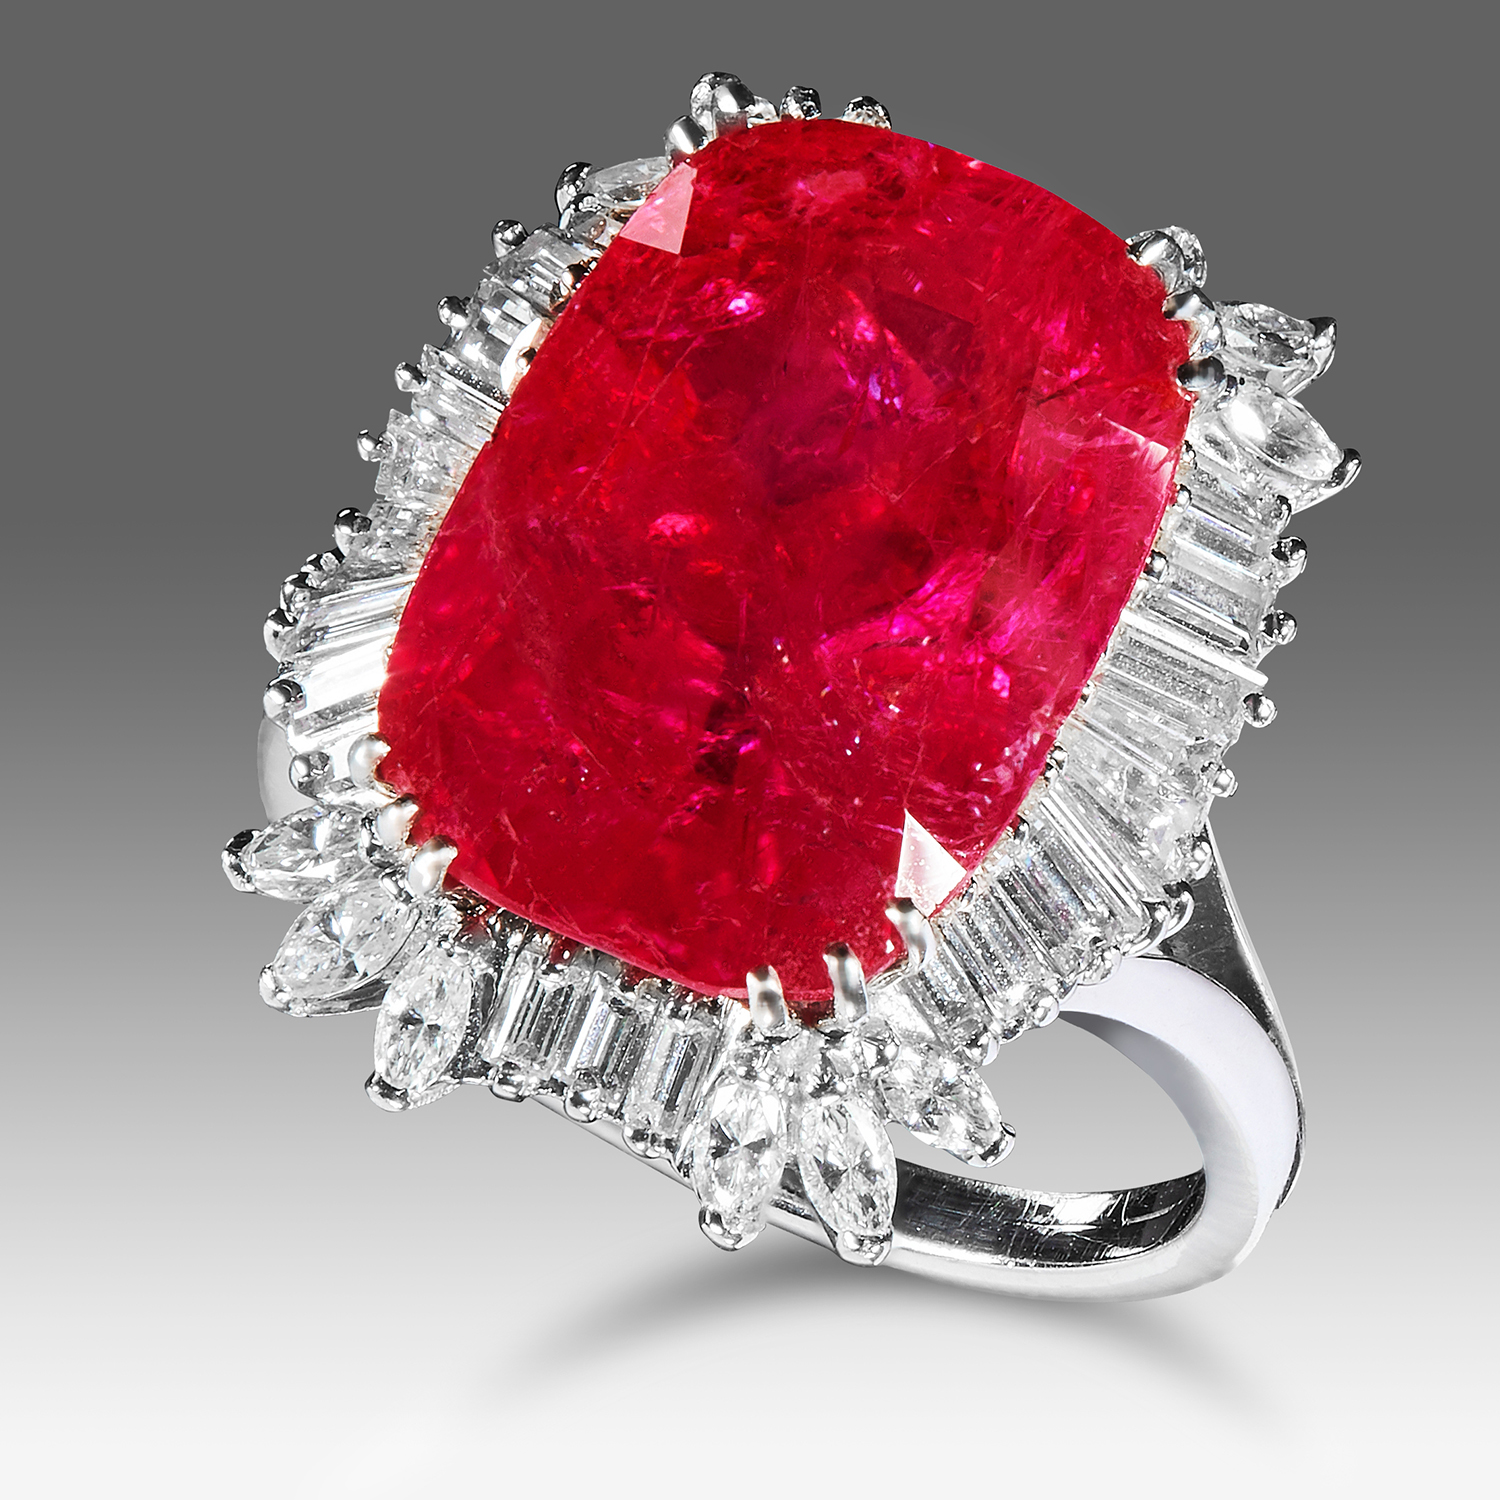 The Riches of the Ruby